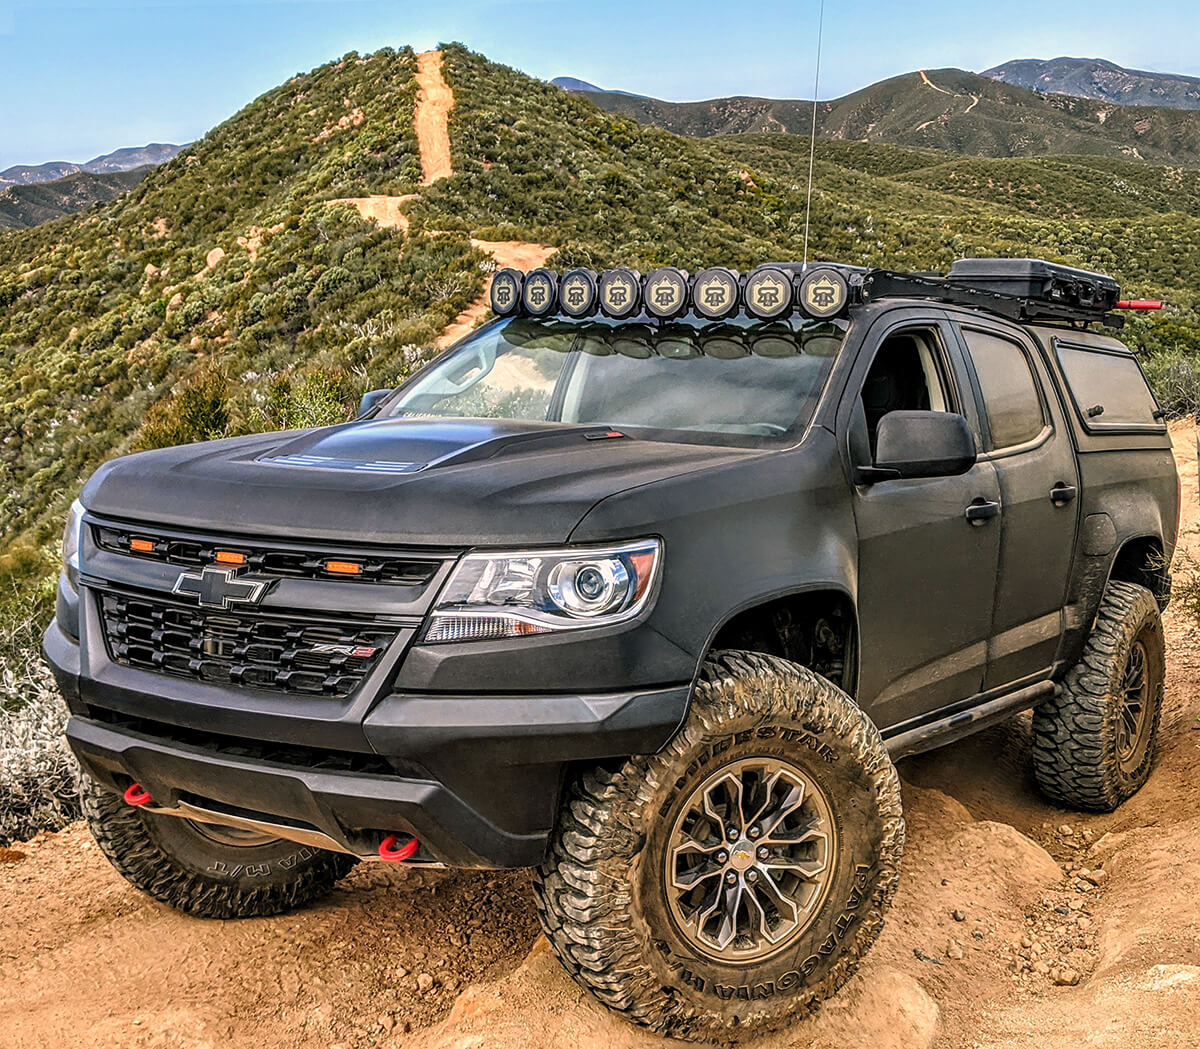 Chevu Colorado ZR2 on 37 inch tires and no lift